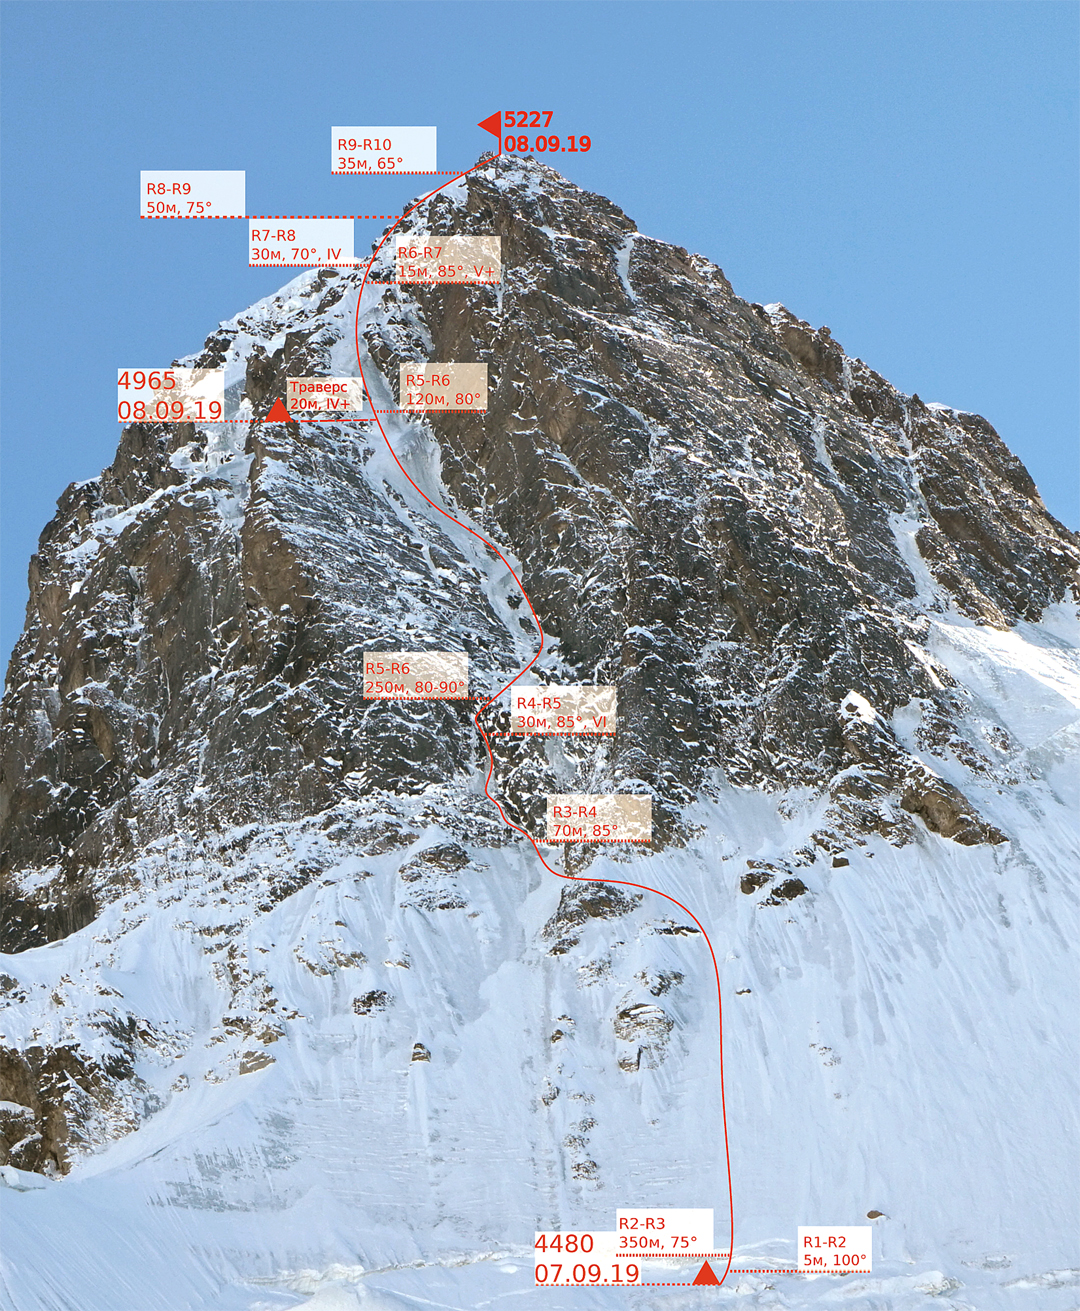 Topo of the headwall on the northeast face of Sauk Dzhaylyau Central. The rock buttresses to the left and right of this line had been climbed previously.